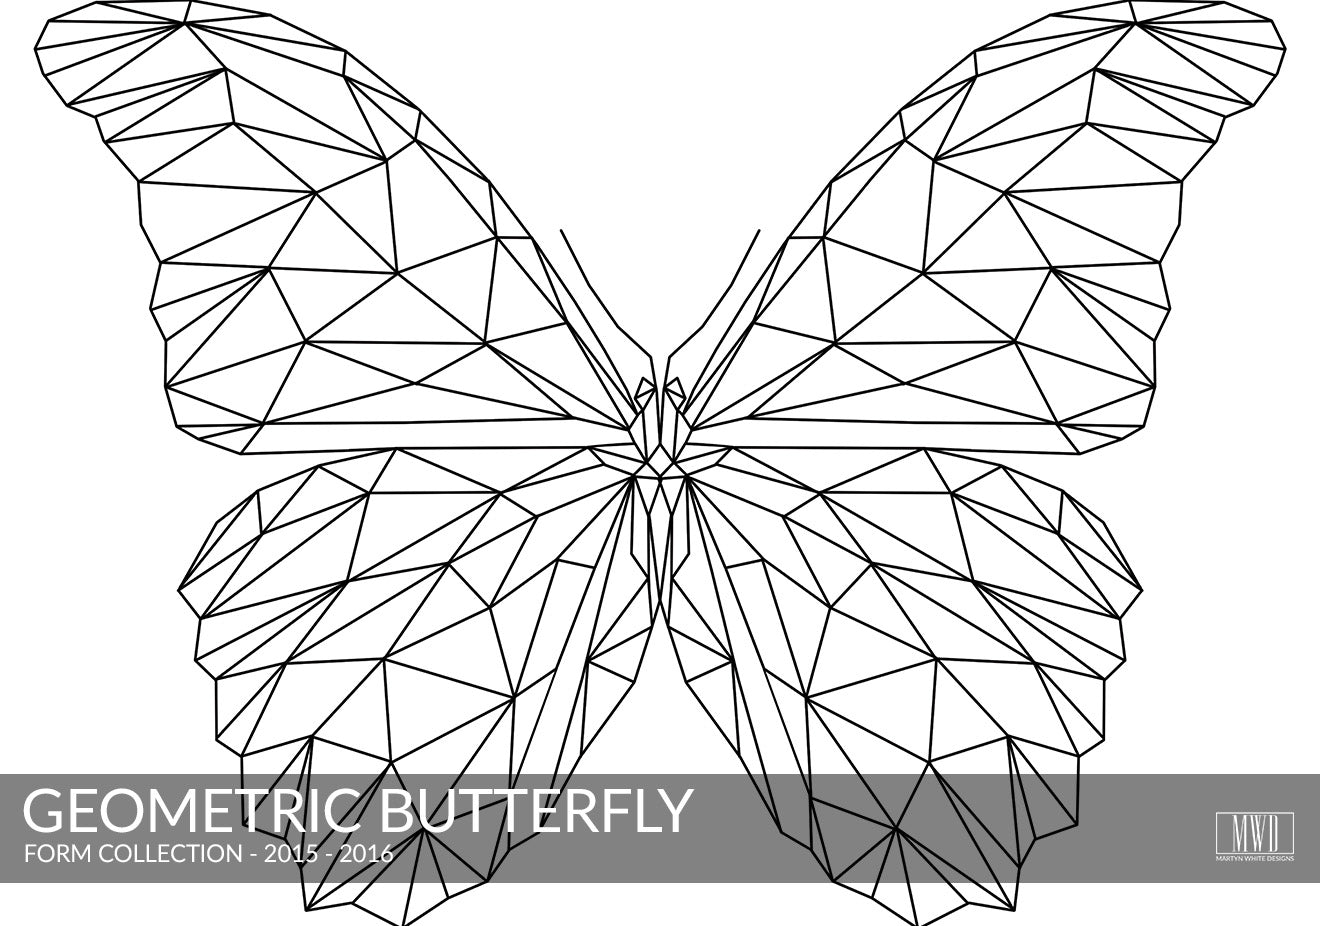 Geometric Butterfly black and White art print